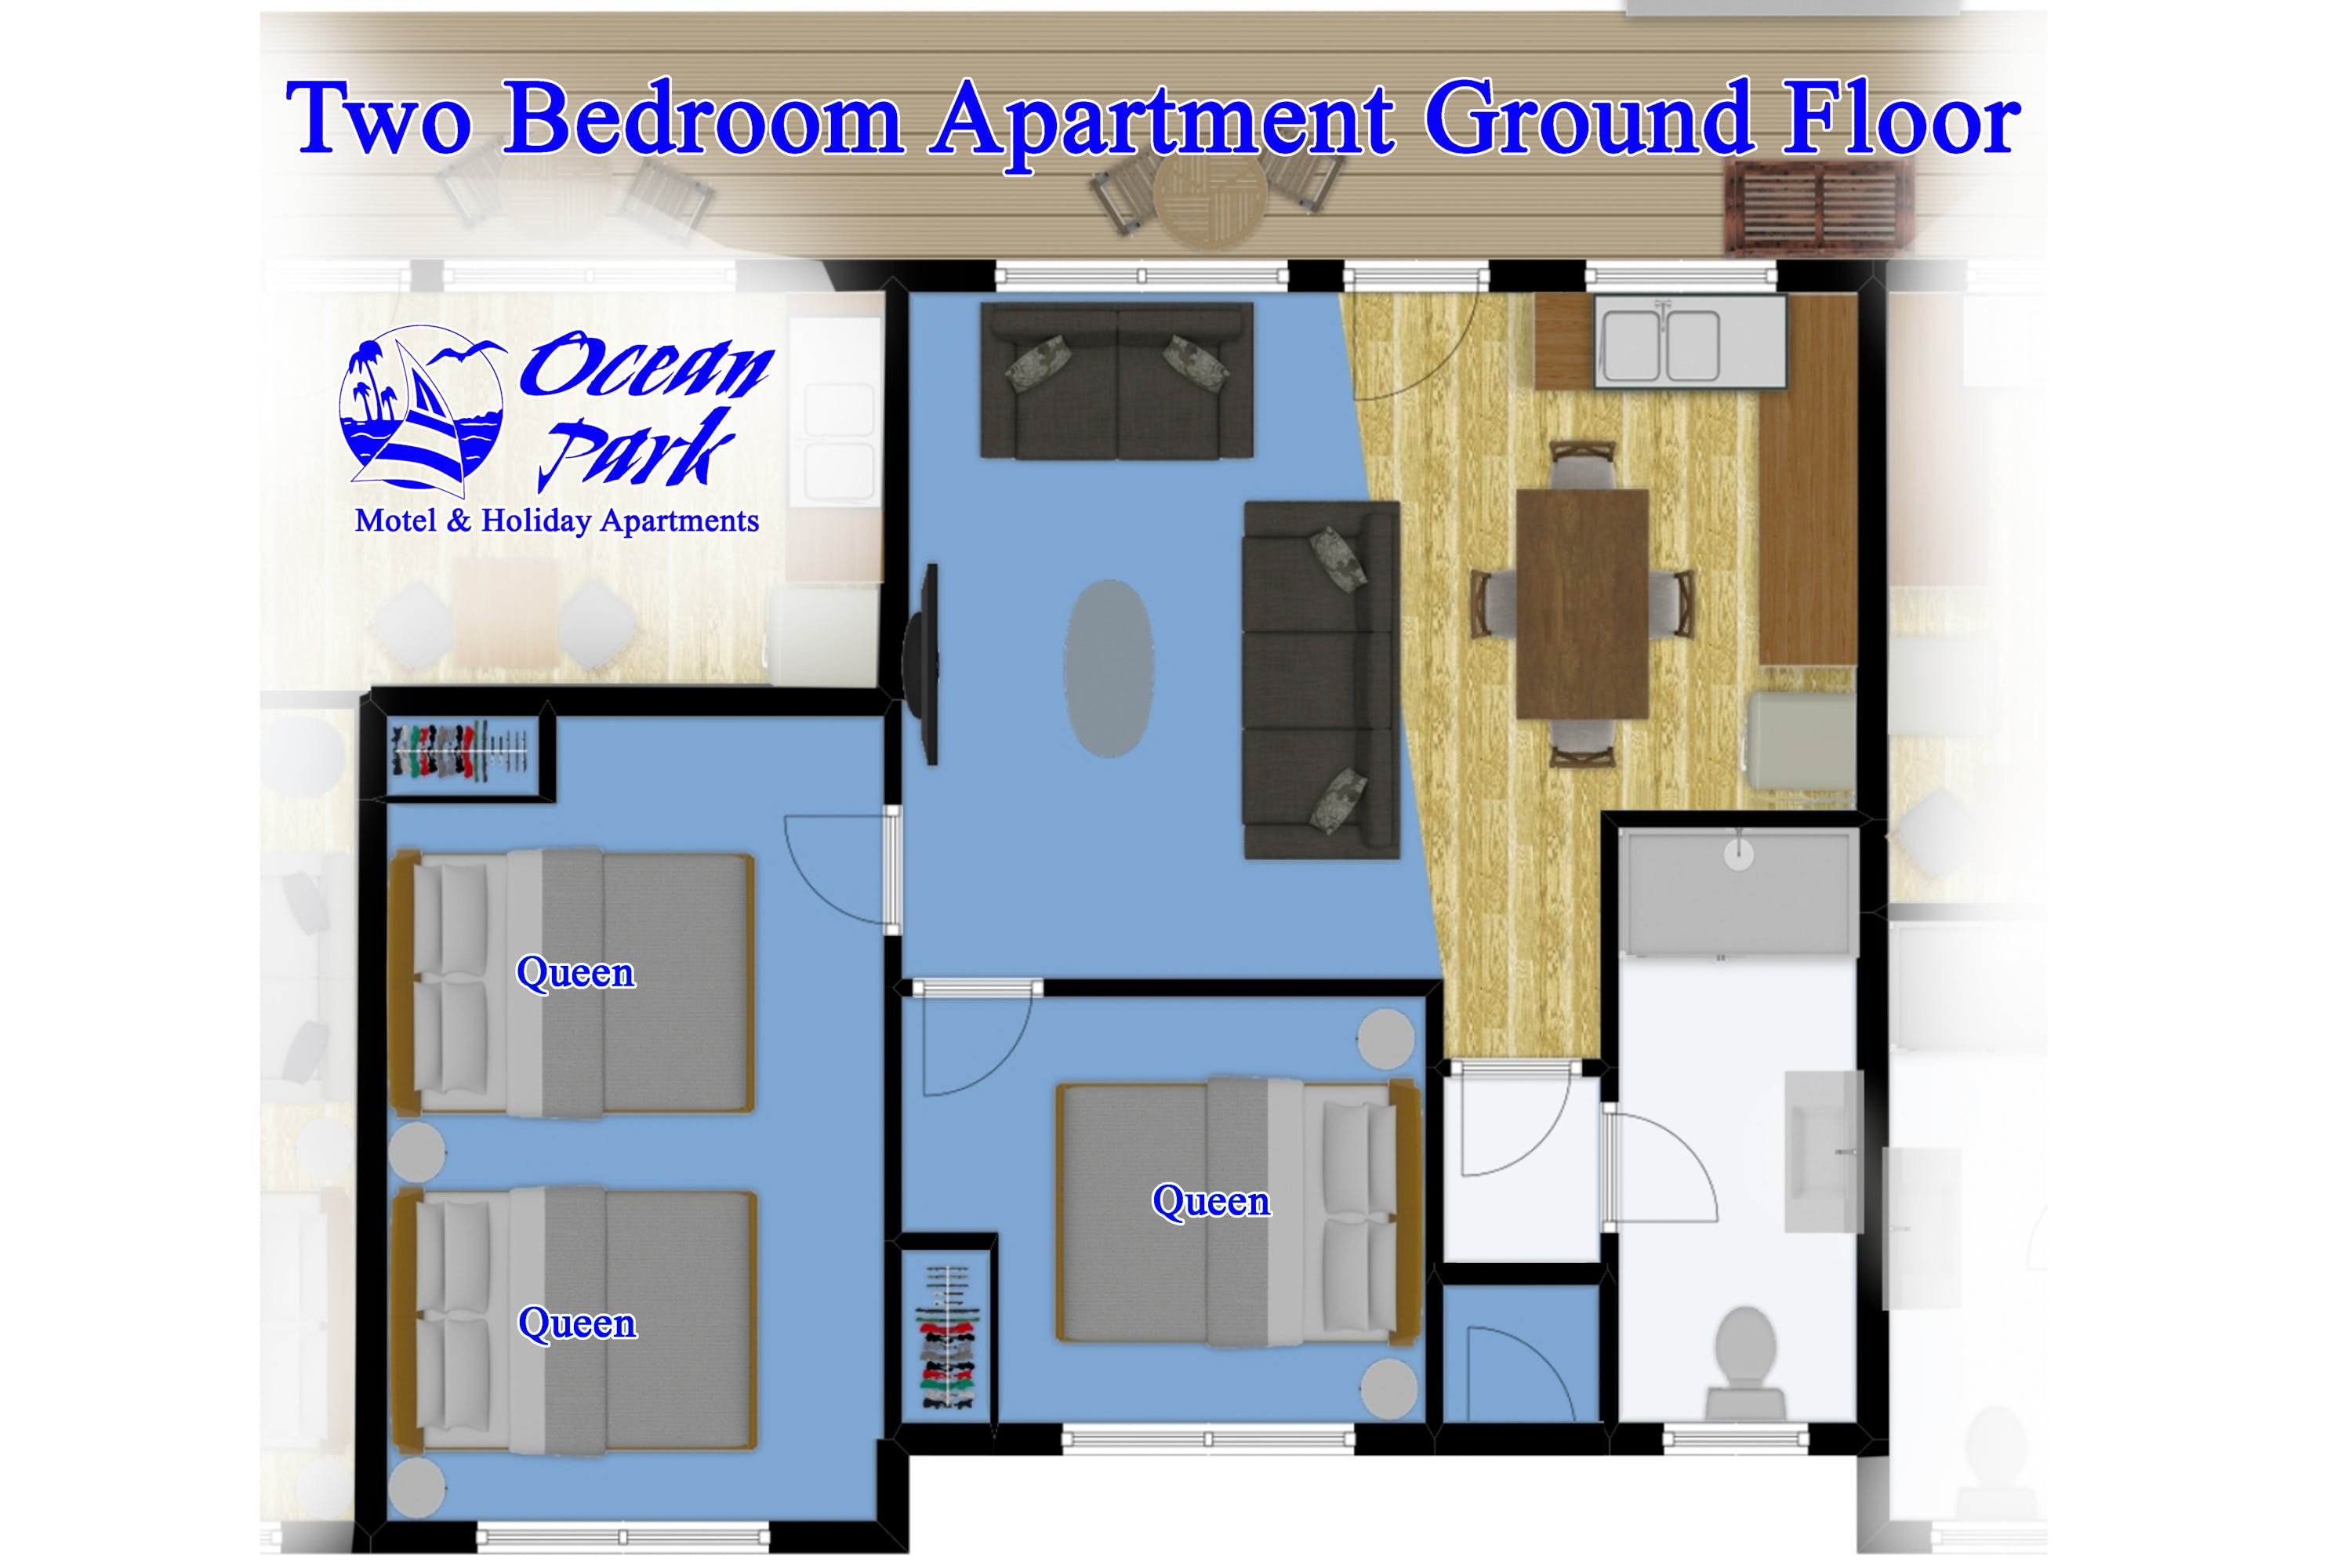 Ground Floor Two Bedroom Apartment Floor Plan